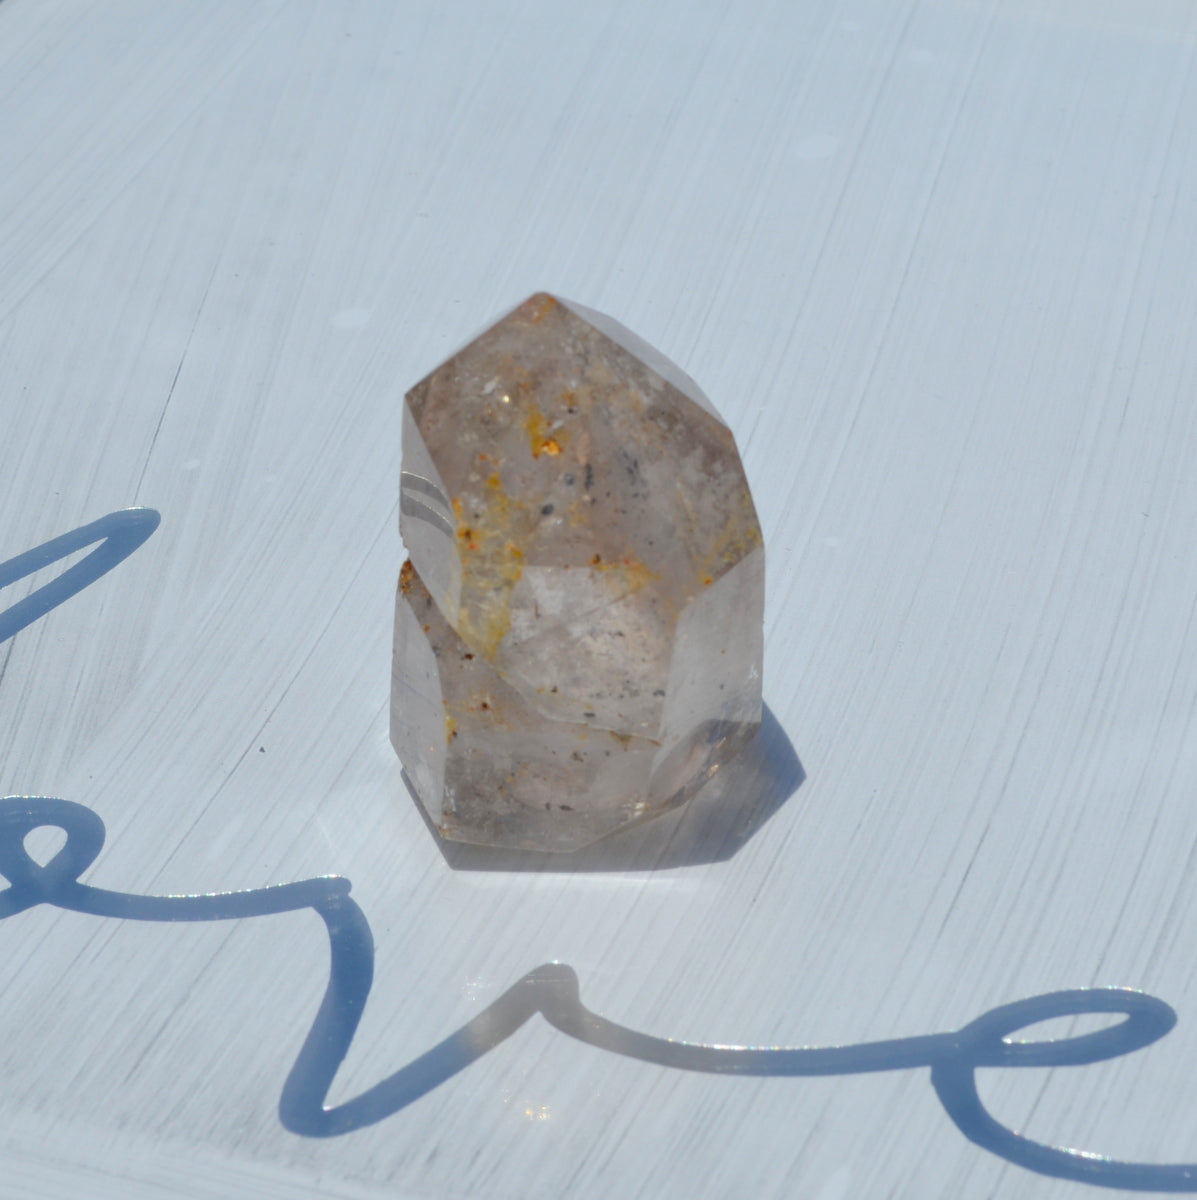 Clear Smoky Limonite Hematite Included Skeletal Polished Quartz Point - Shop Now at Illiom Crystals - Afterpay Available